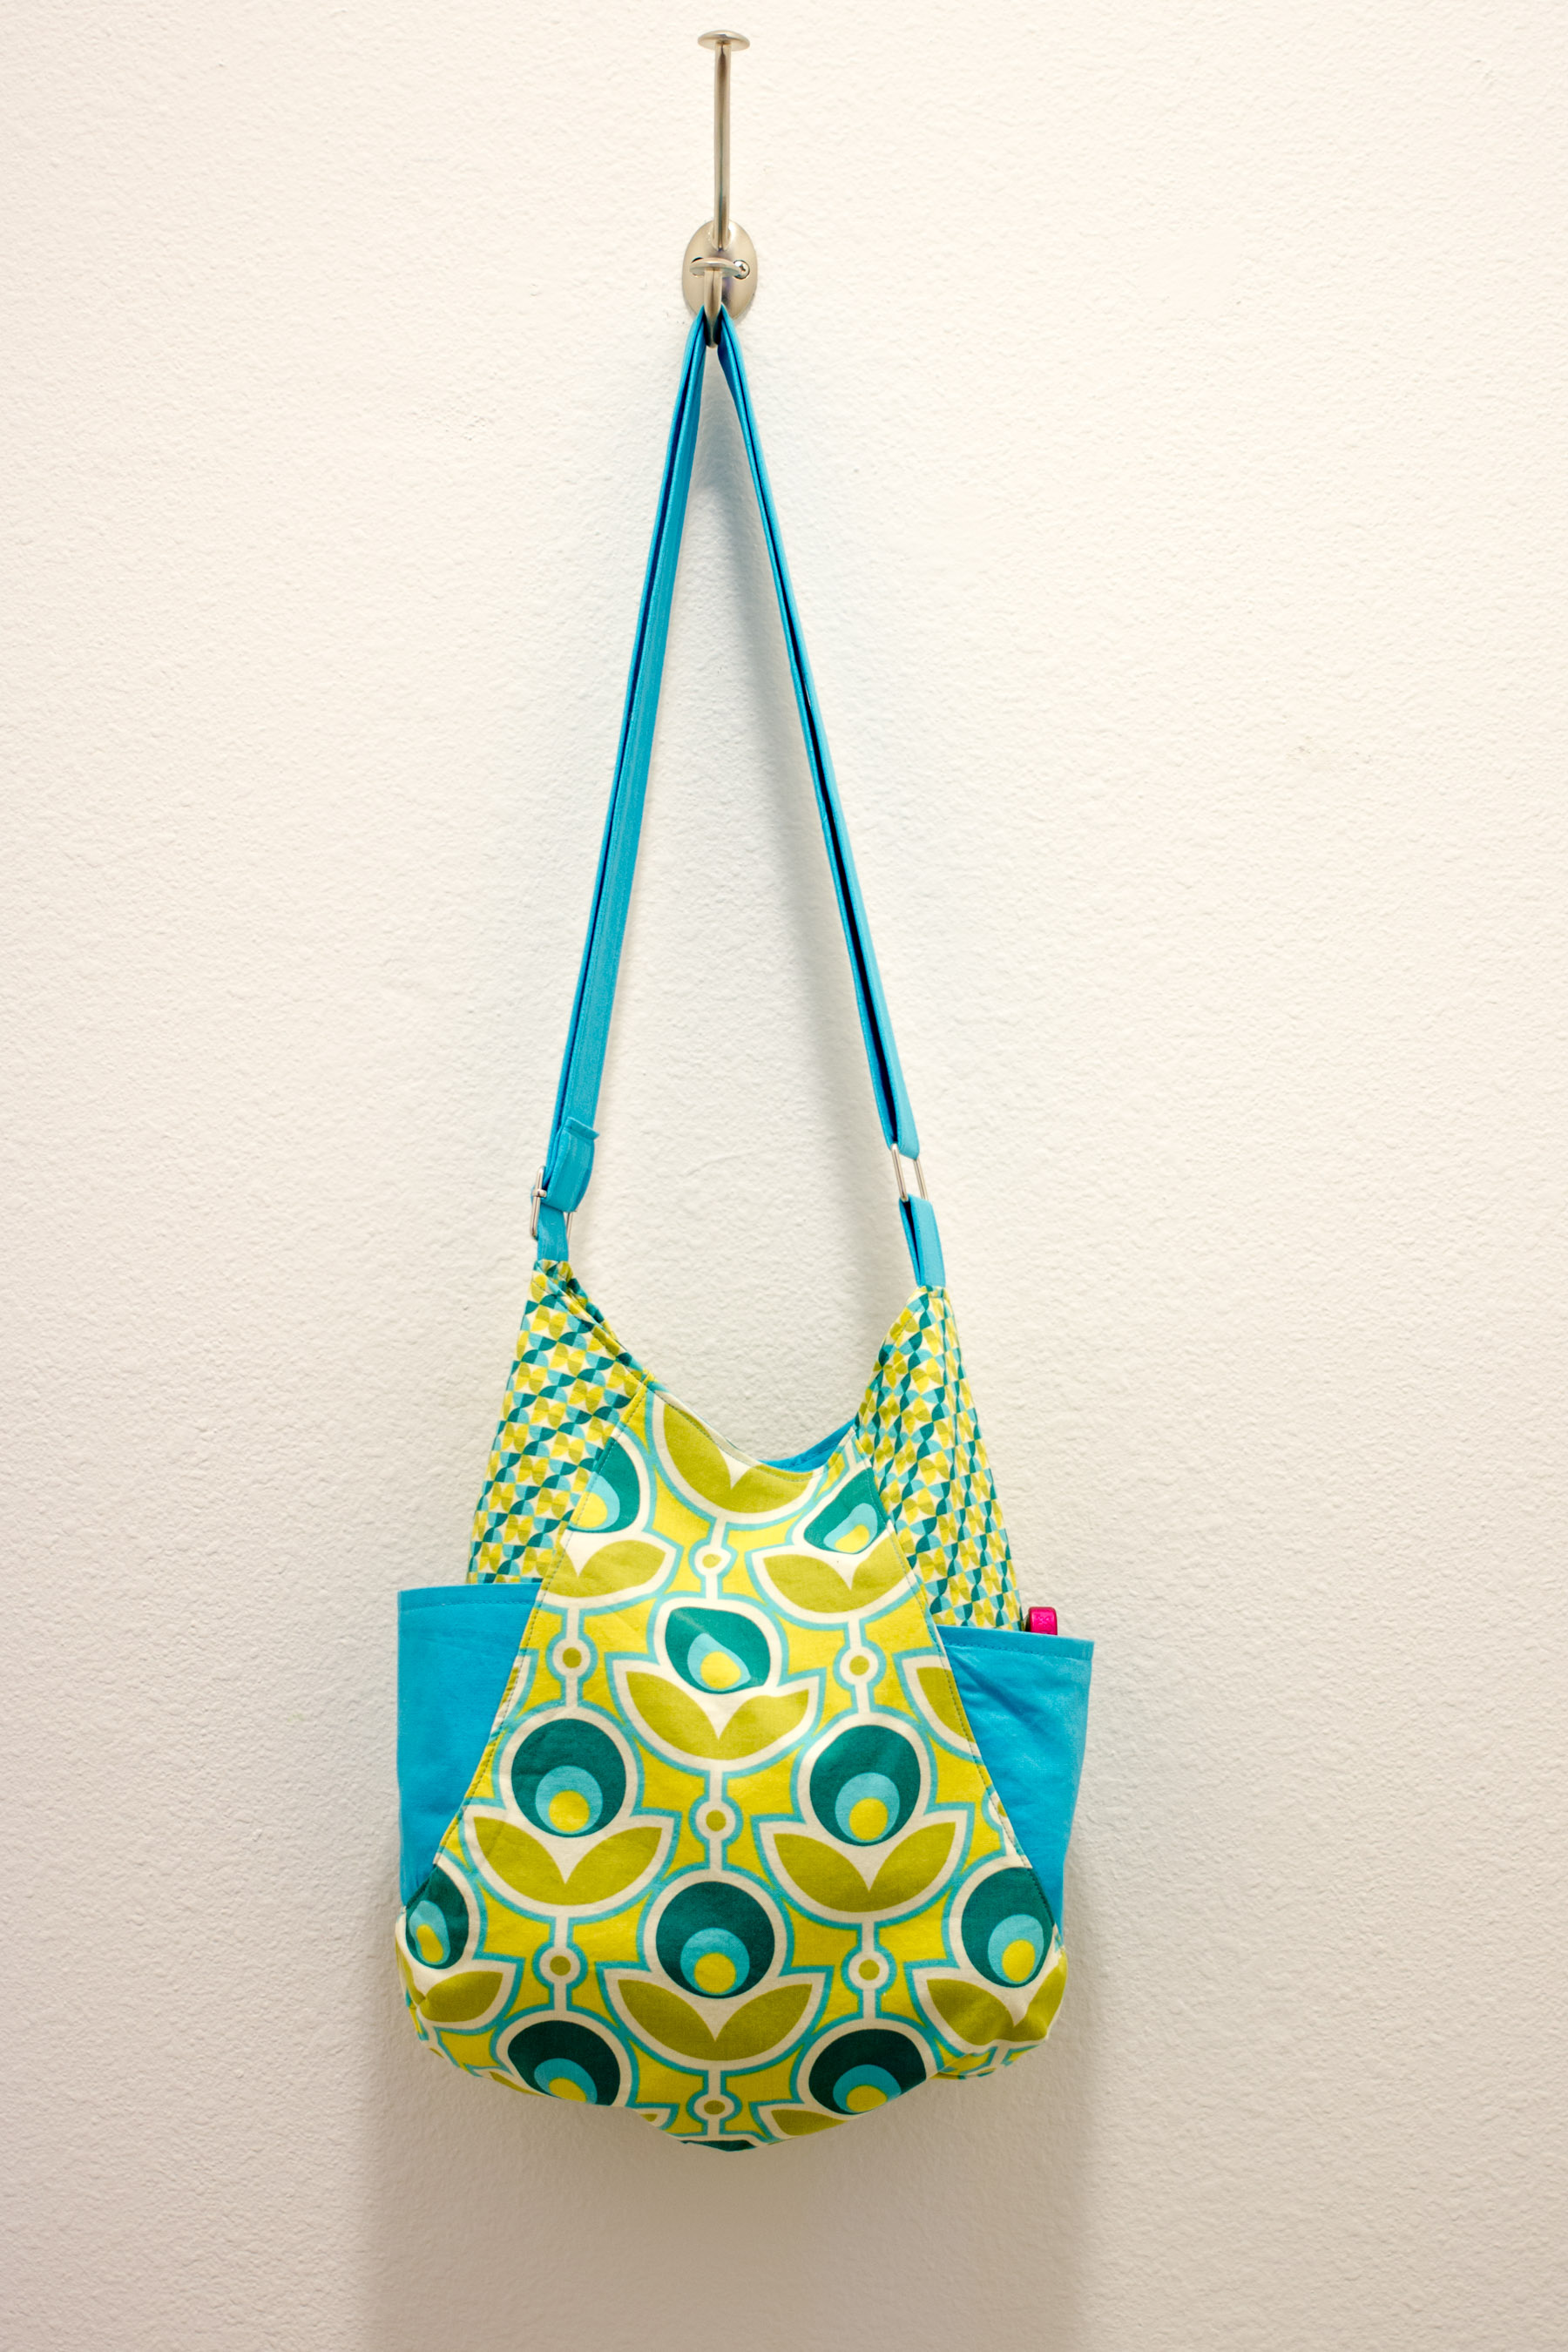 241 Tote for Mom | katili*made | http://www.katilimade.com